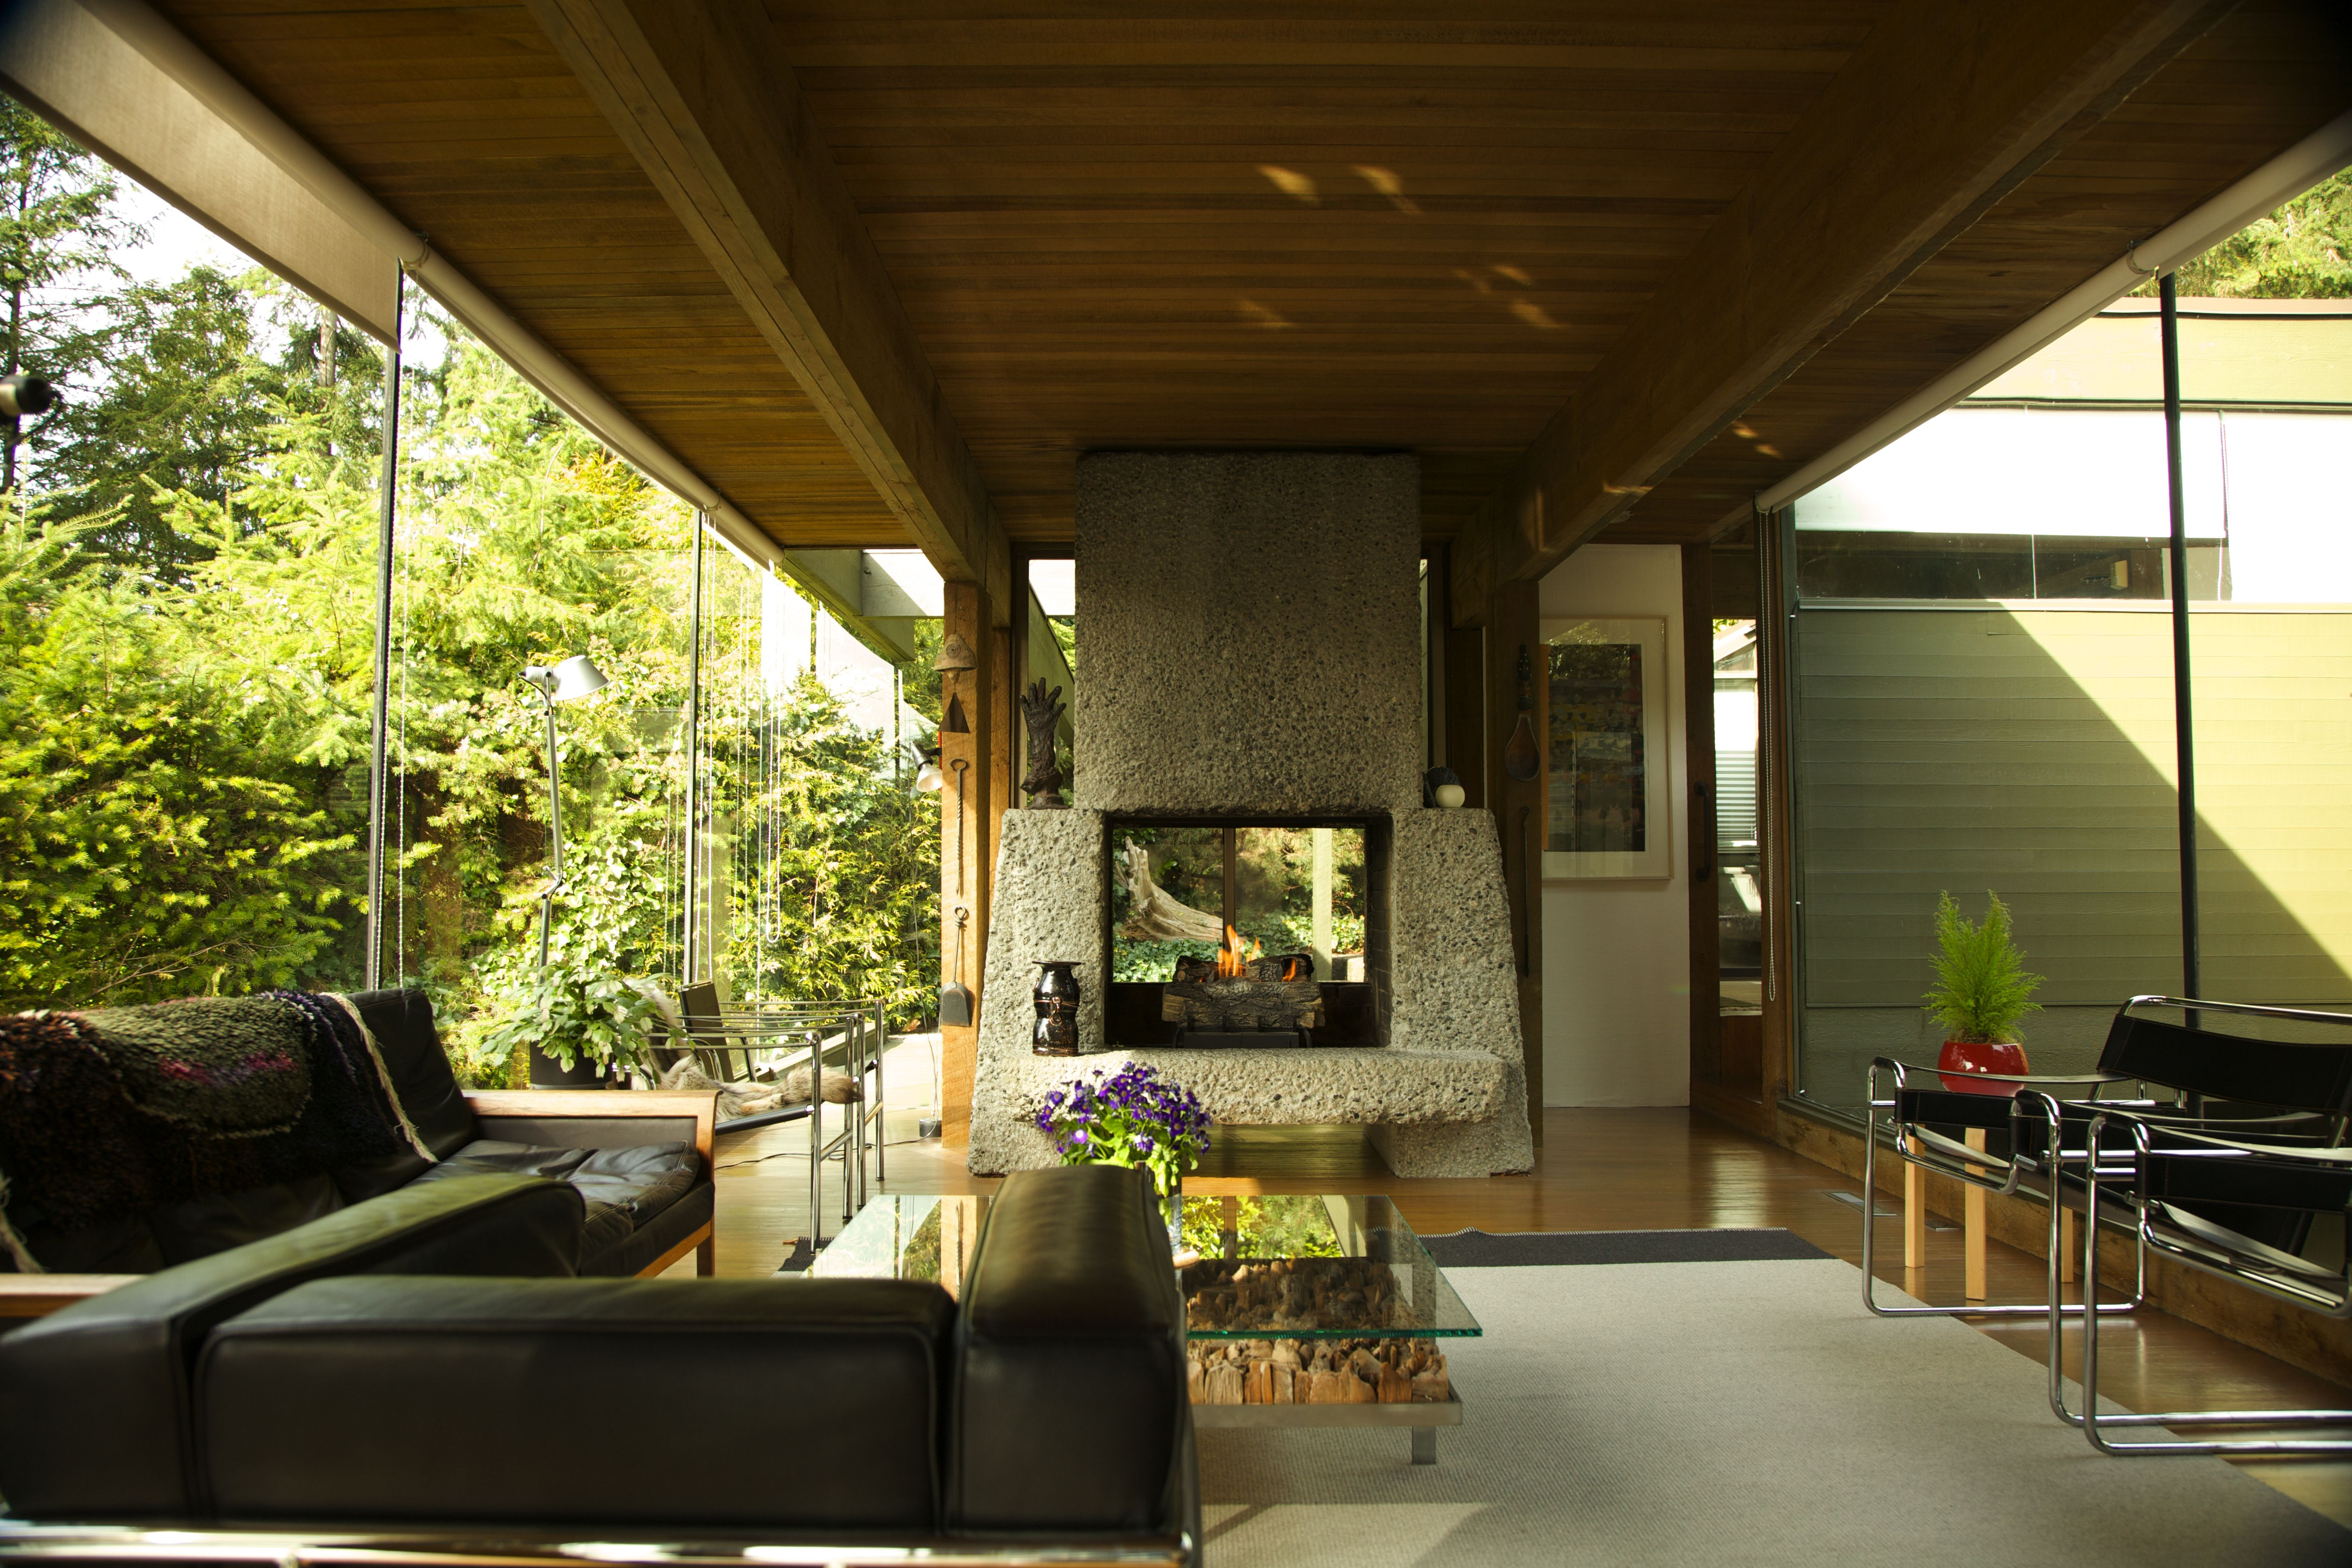 West vancouvers 1964 smith house designed by arthur erickson geoffrey massey